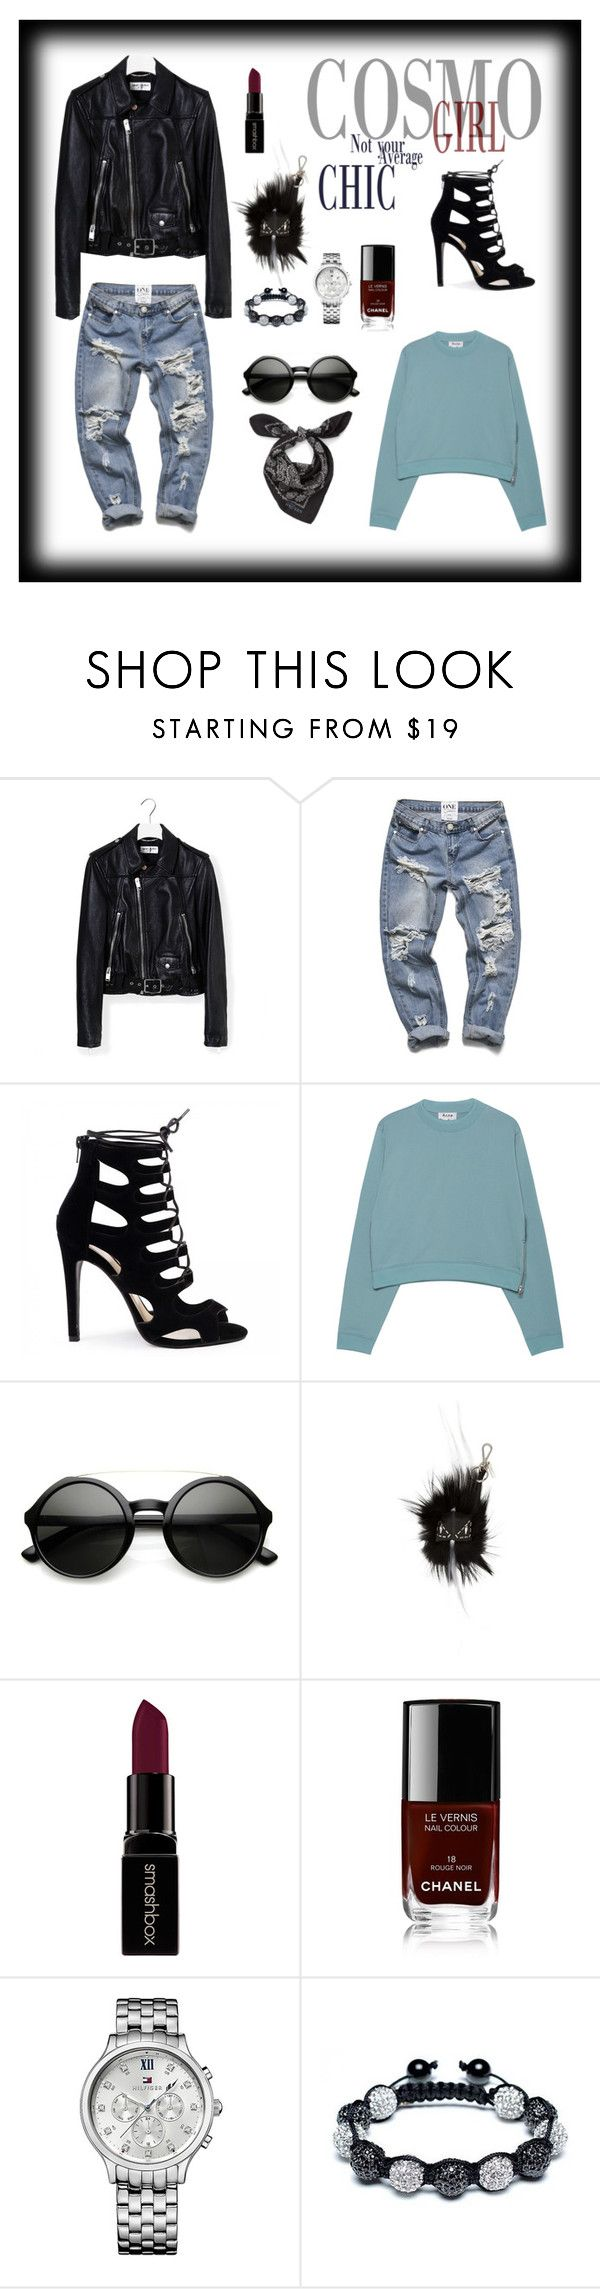 """""""Cosmo Girl - tomboy chic"""" by shop-styleloft on Polyvore featuring Yves Saint Laurent, Acne Studios, Fendi, Smashbox, Chanel, Tommy Hilfiger, Bling Jewelry and Alexander McQueen"""